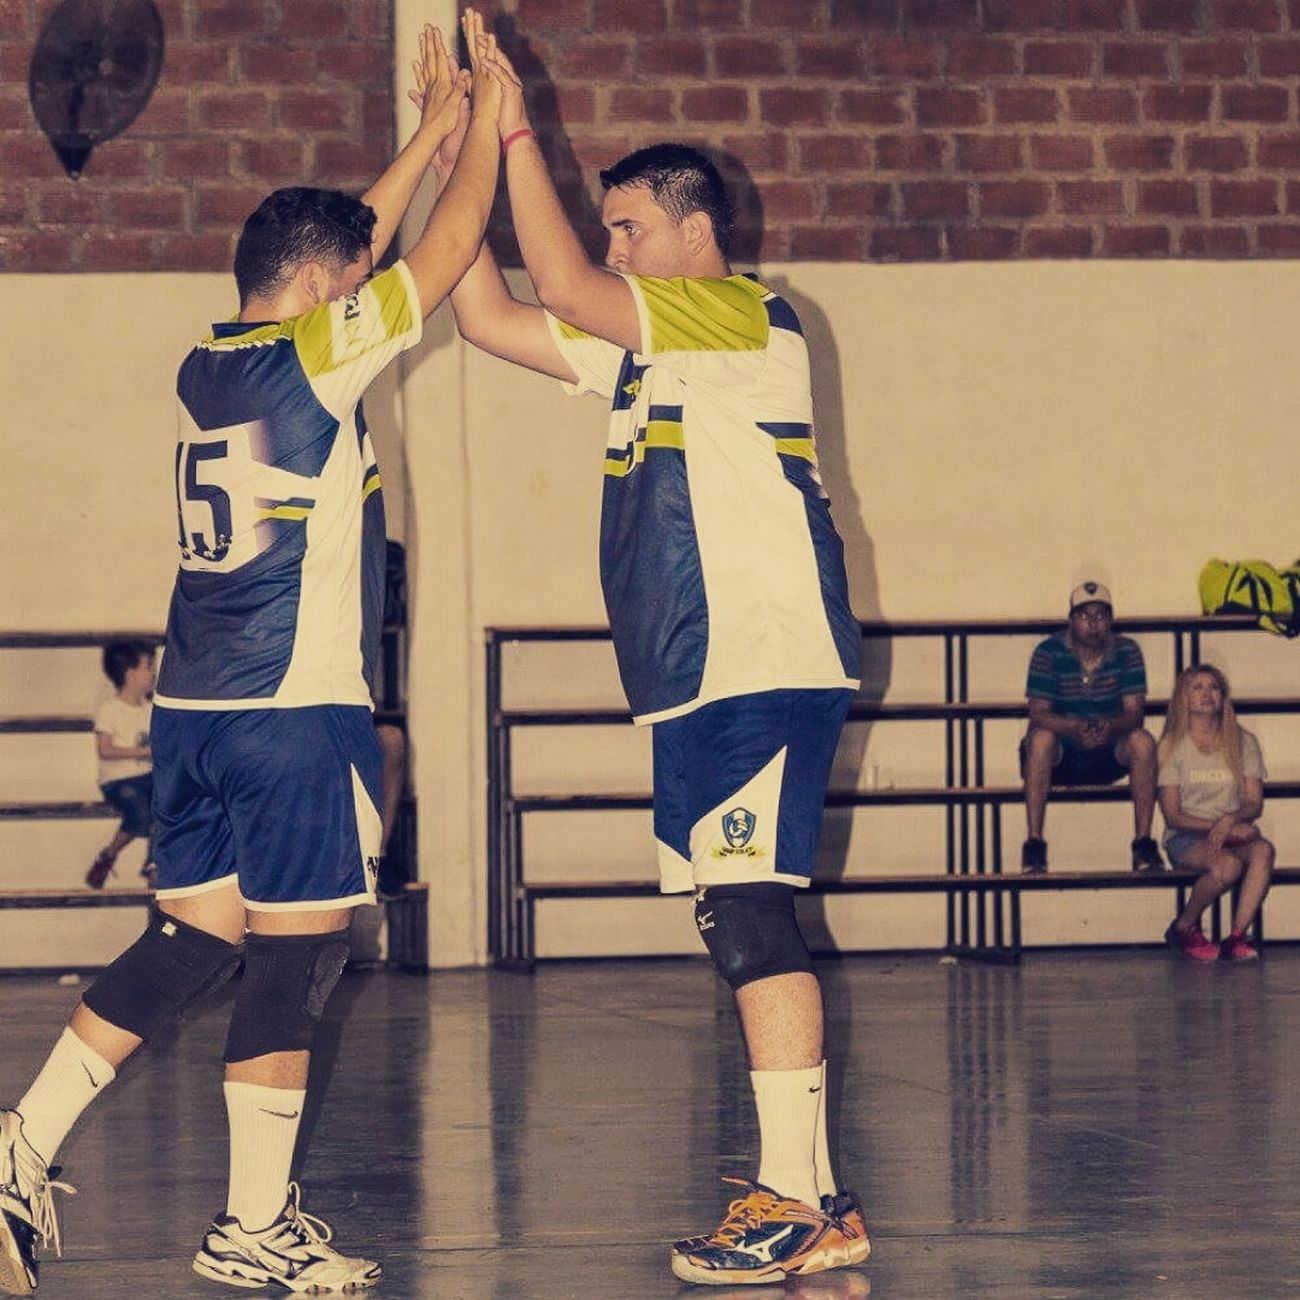 Voley Voleybol Voleybolteam Voleyball VOLEYBOLCUBAYAN KBSK Voleybol Takımı Voleyboll VoleyWithFriends💗 Voleyboldan Geriye Kalanlar.. Sexyass Sexyboysfollowme NiceBooty Sexymen NiceShot Men Style Nicepic Looking At Camera Human Body Part One Young Woman Only Booty Booty Real People Star - Space Astronomy Indoors  Rear View